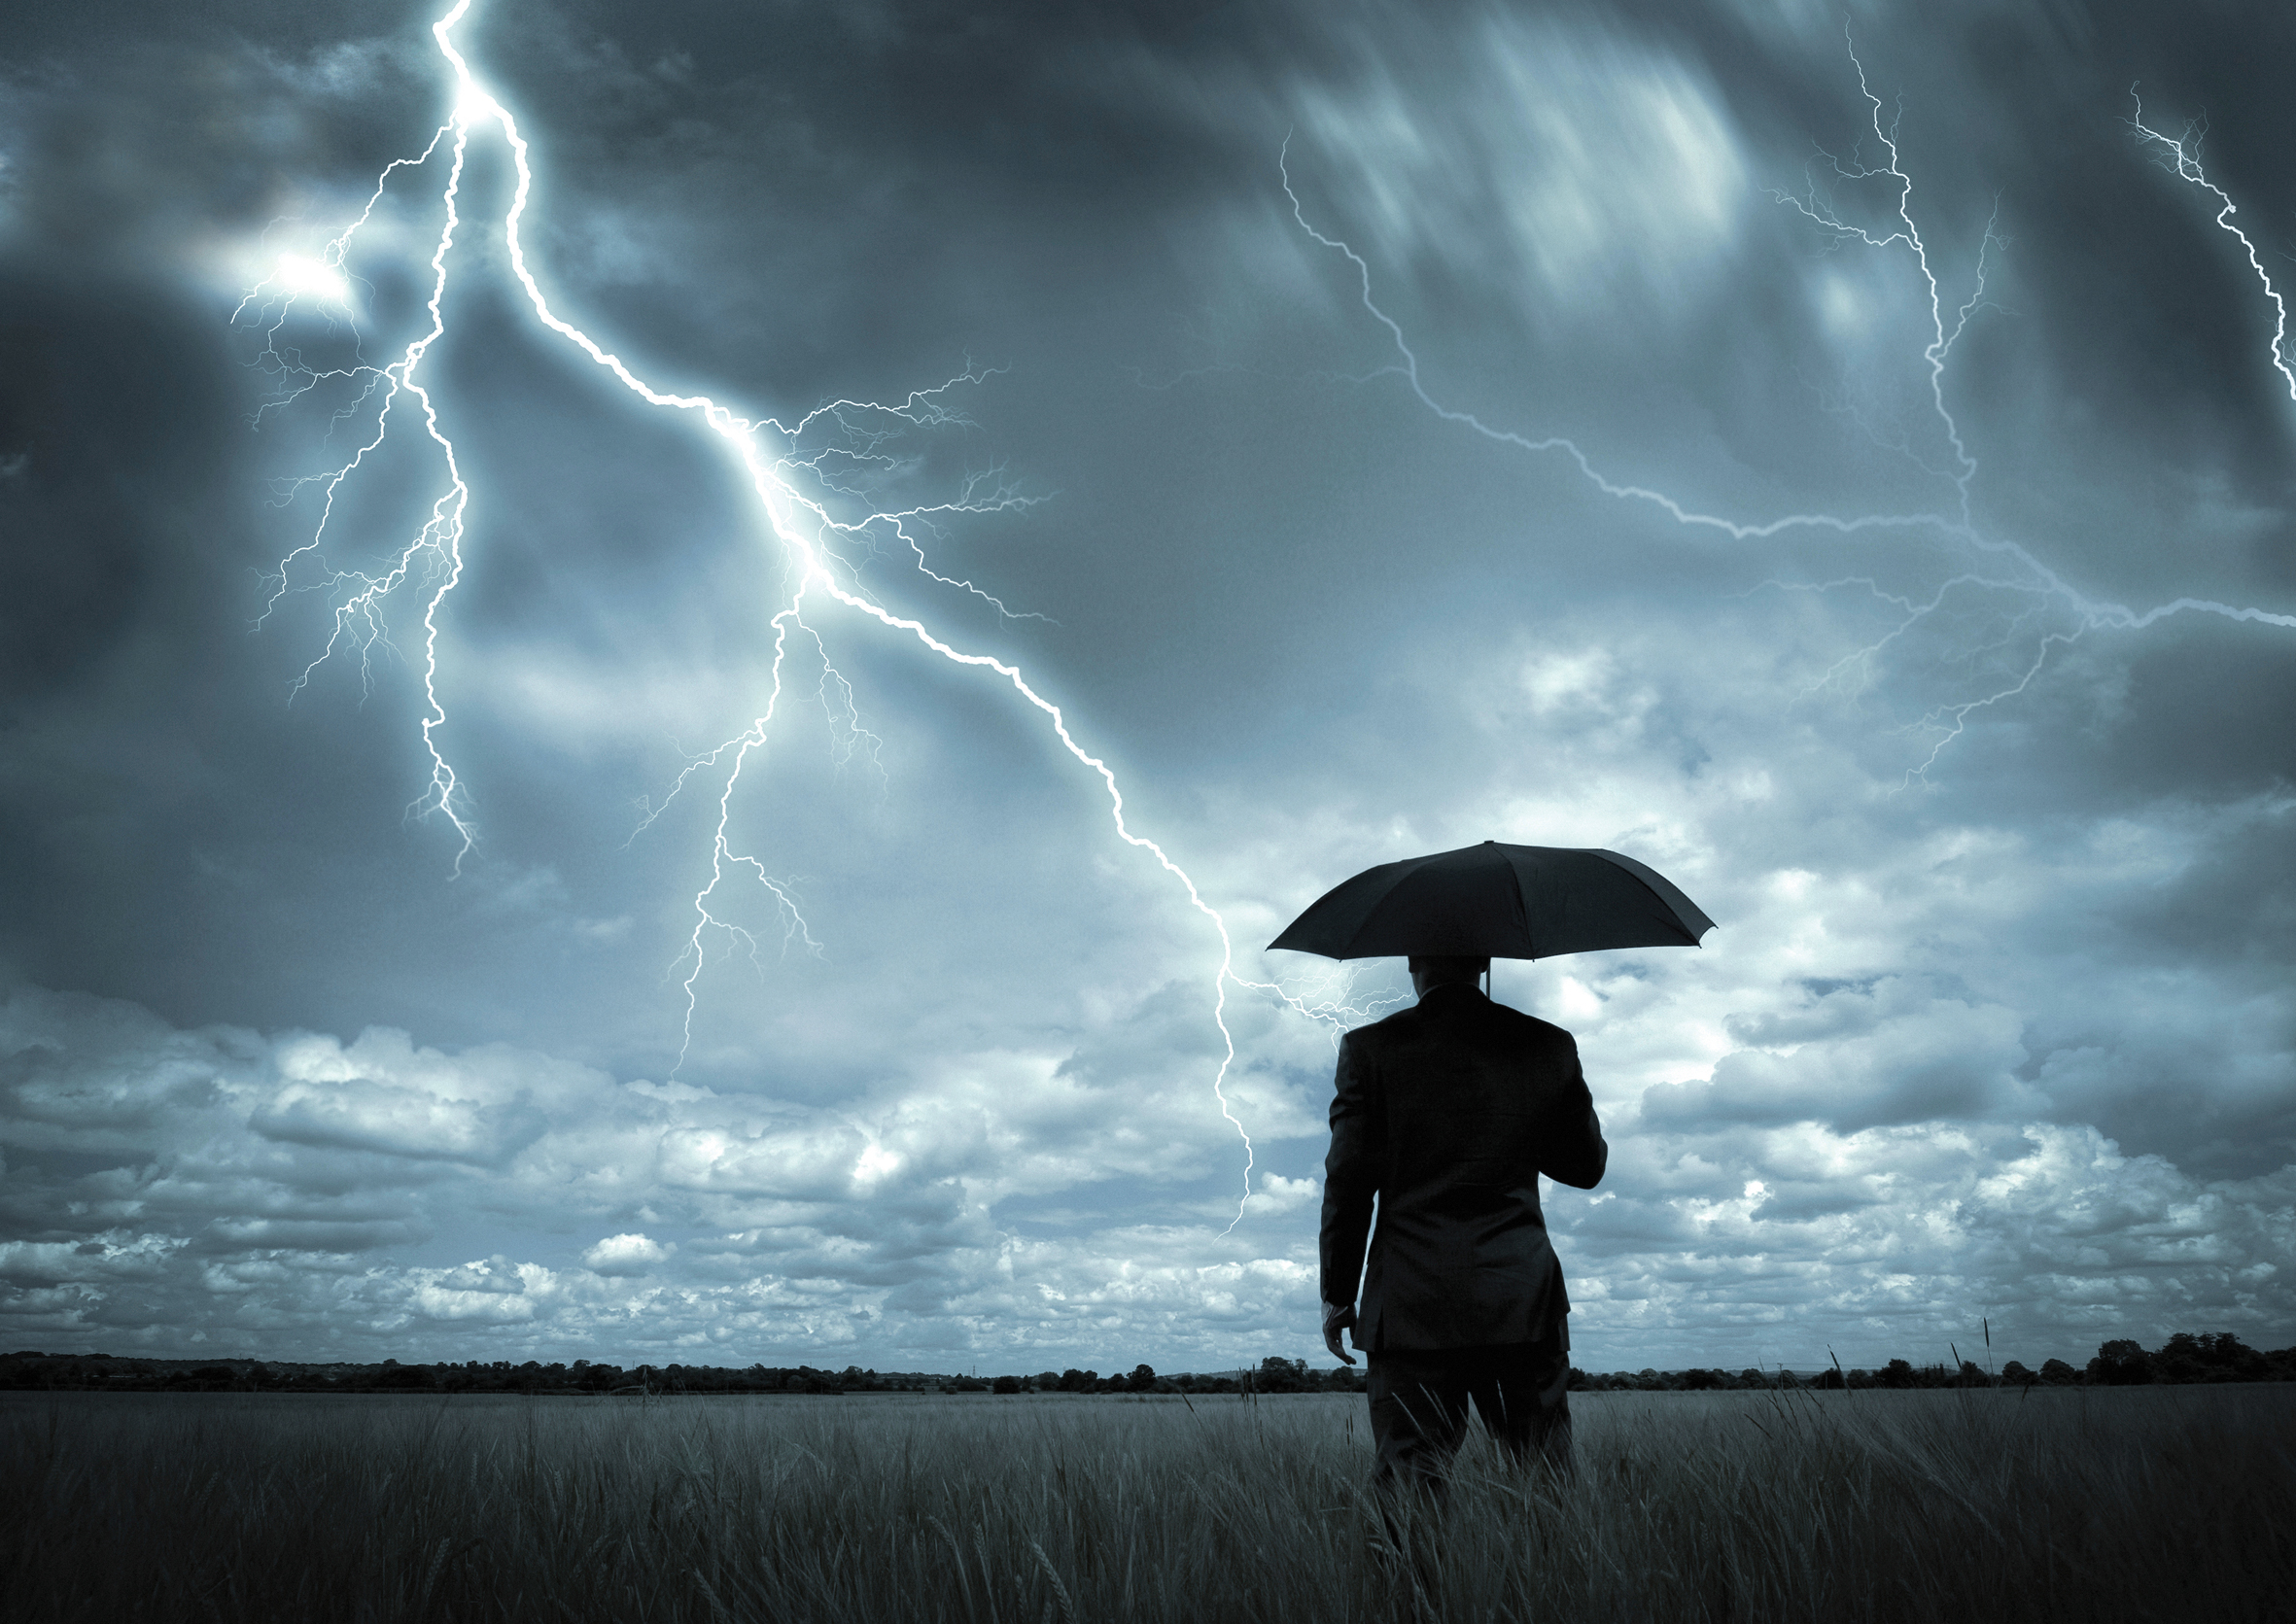 Storms Come and Go | Eric Thomas